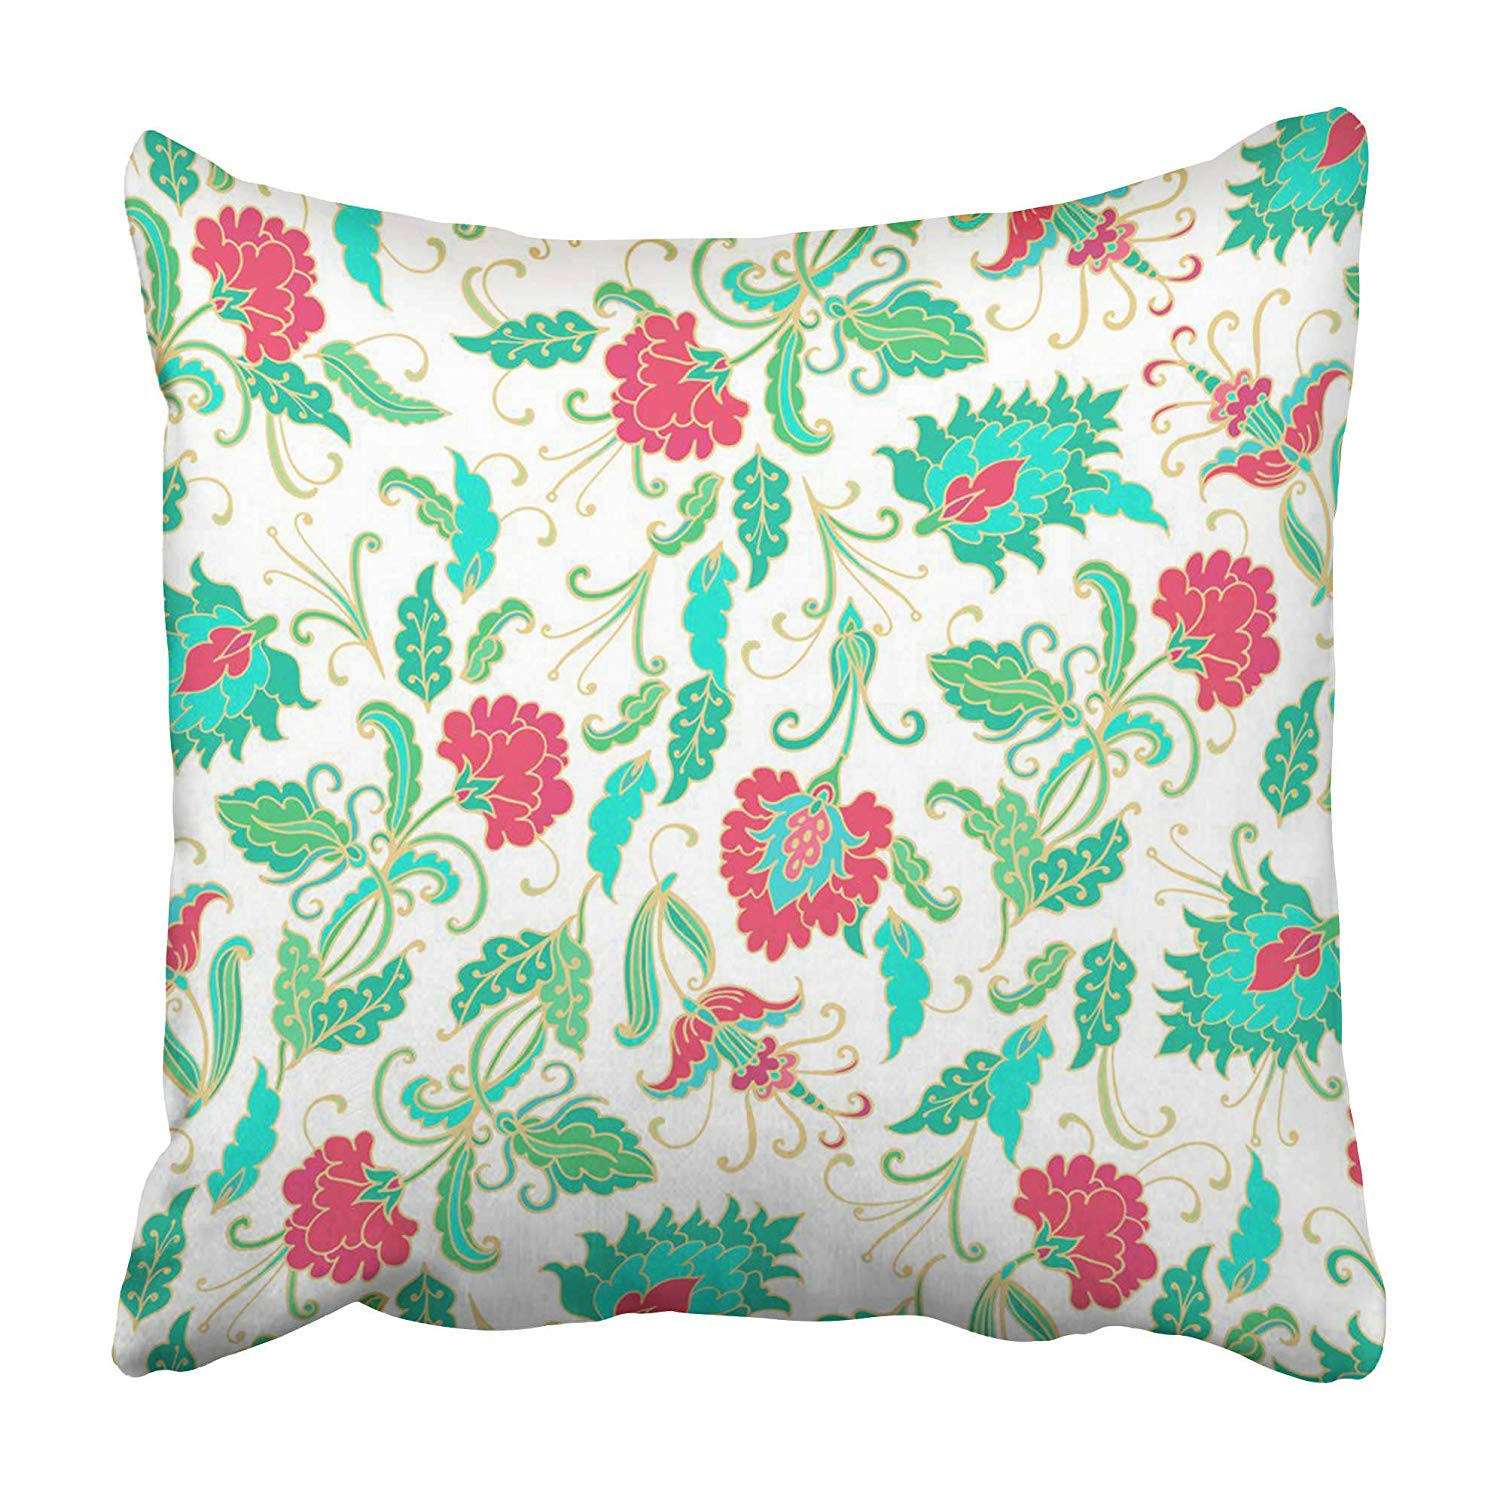 ARHOME Ditsy Turquoise Red Paisley Floral Pattern on White Style Flower Tulip Batik Pillowcase 20x20 inch